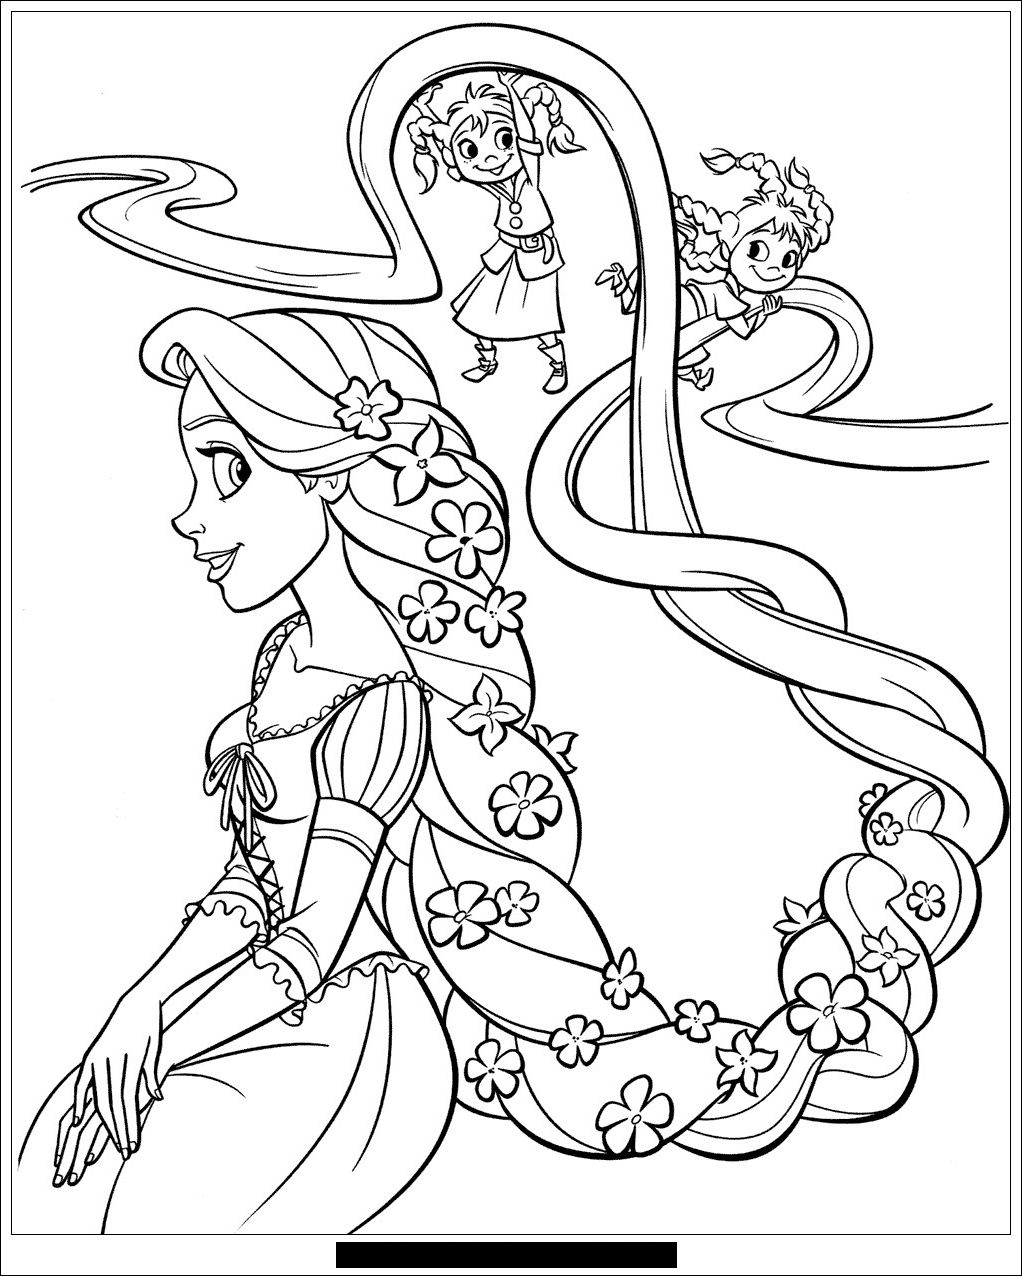 Raiponce disney 29 Coloriage Raiponce Coloriages pour  Tangled